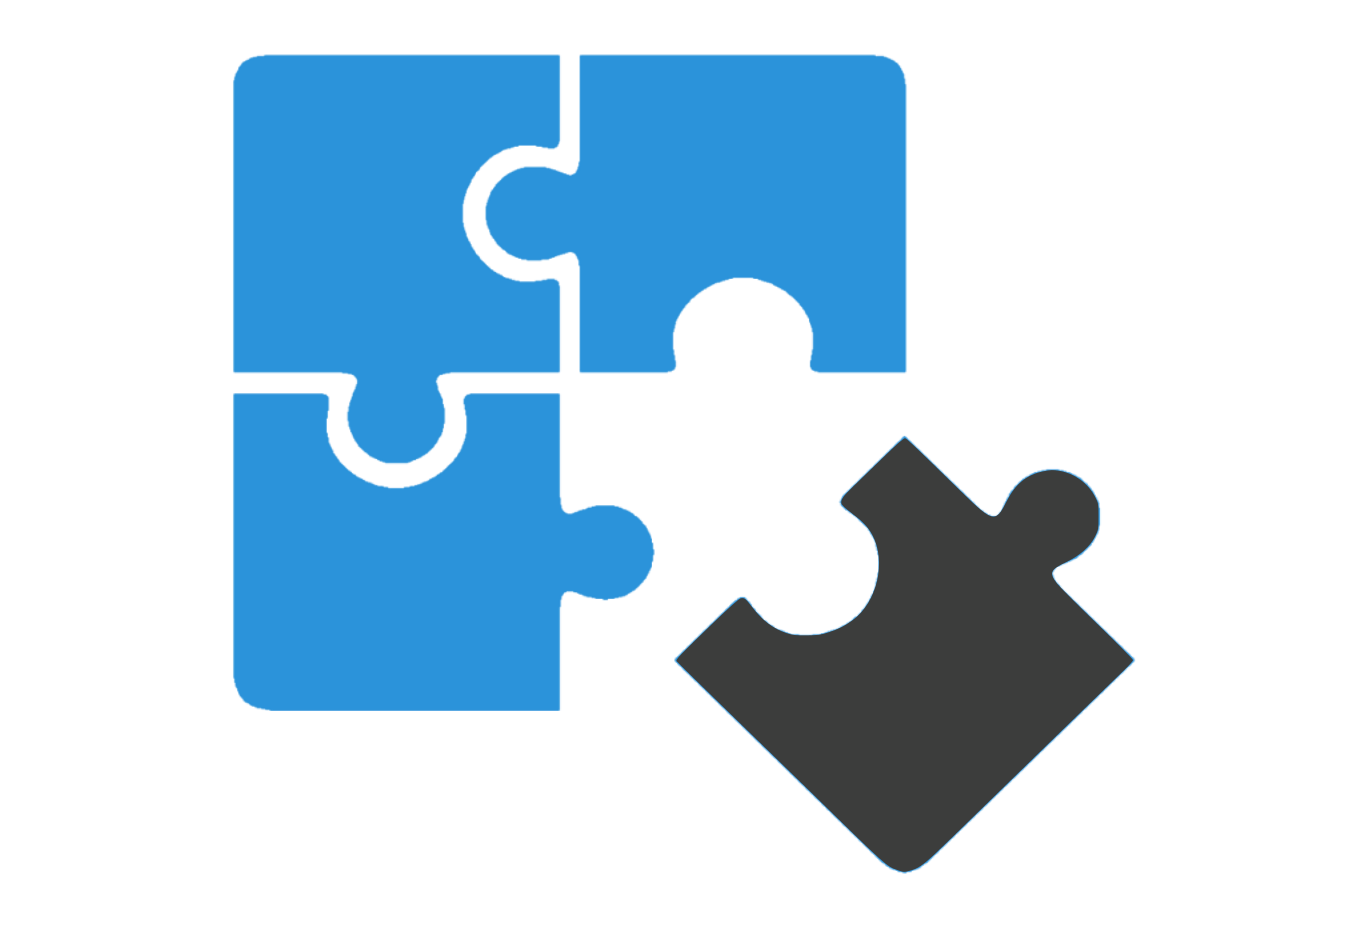 Puzzle clipart intervention. Operational intelligence solution support